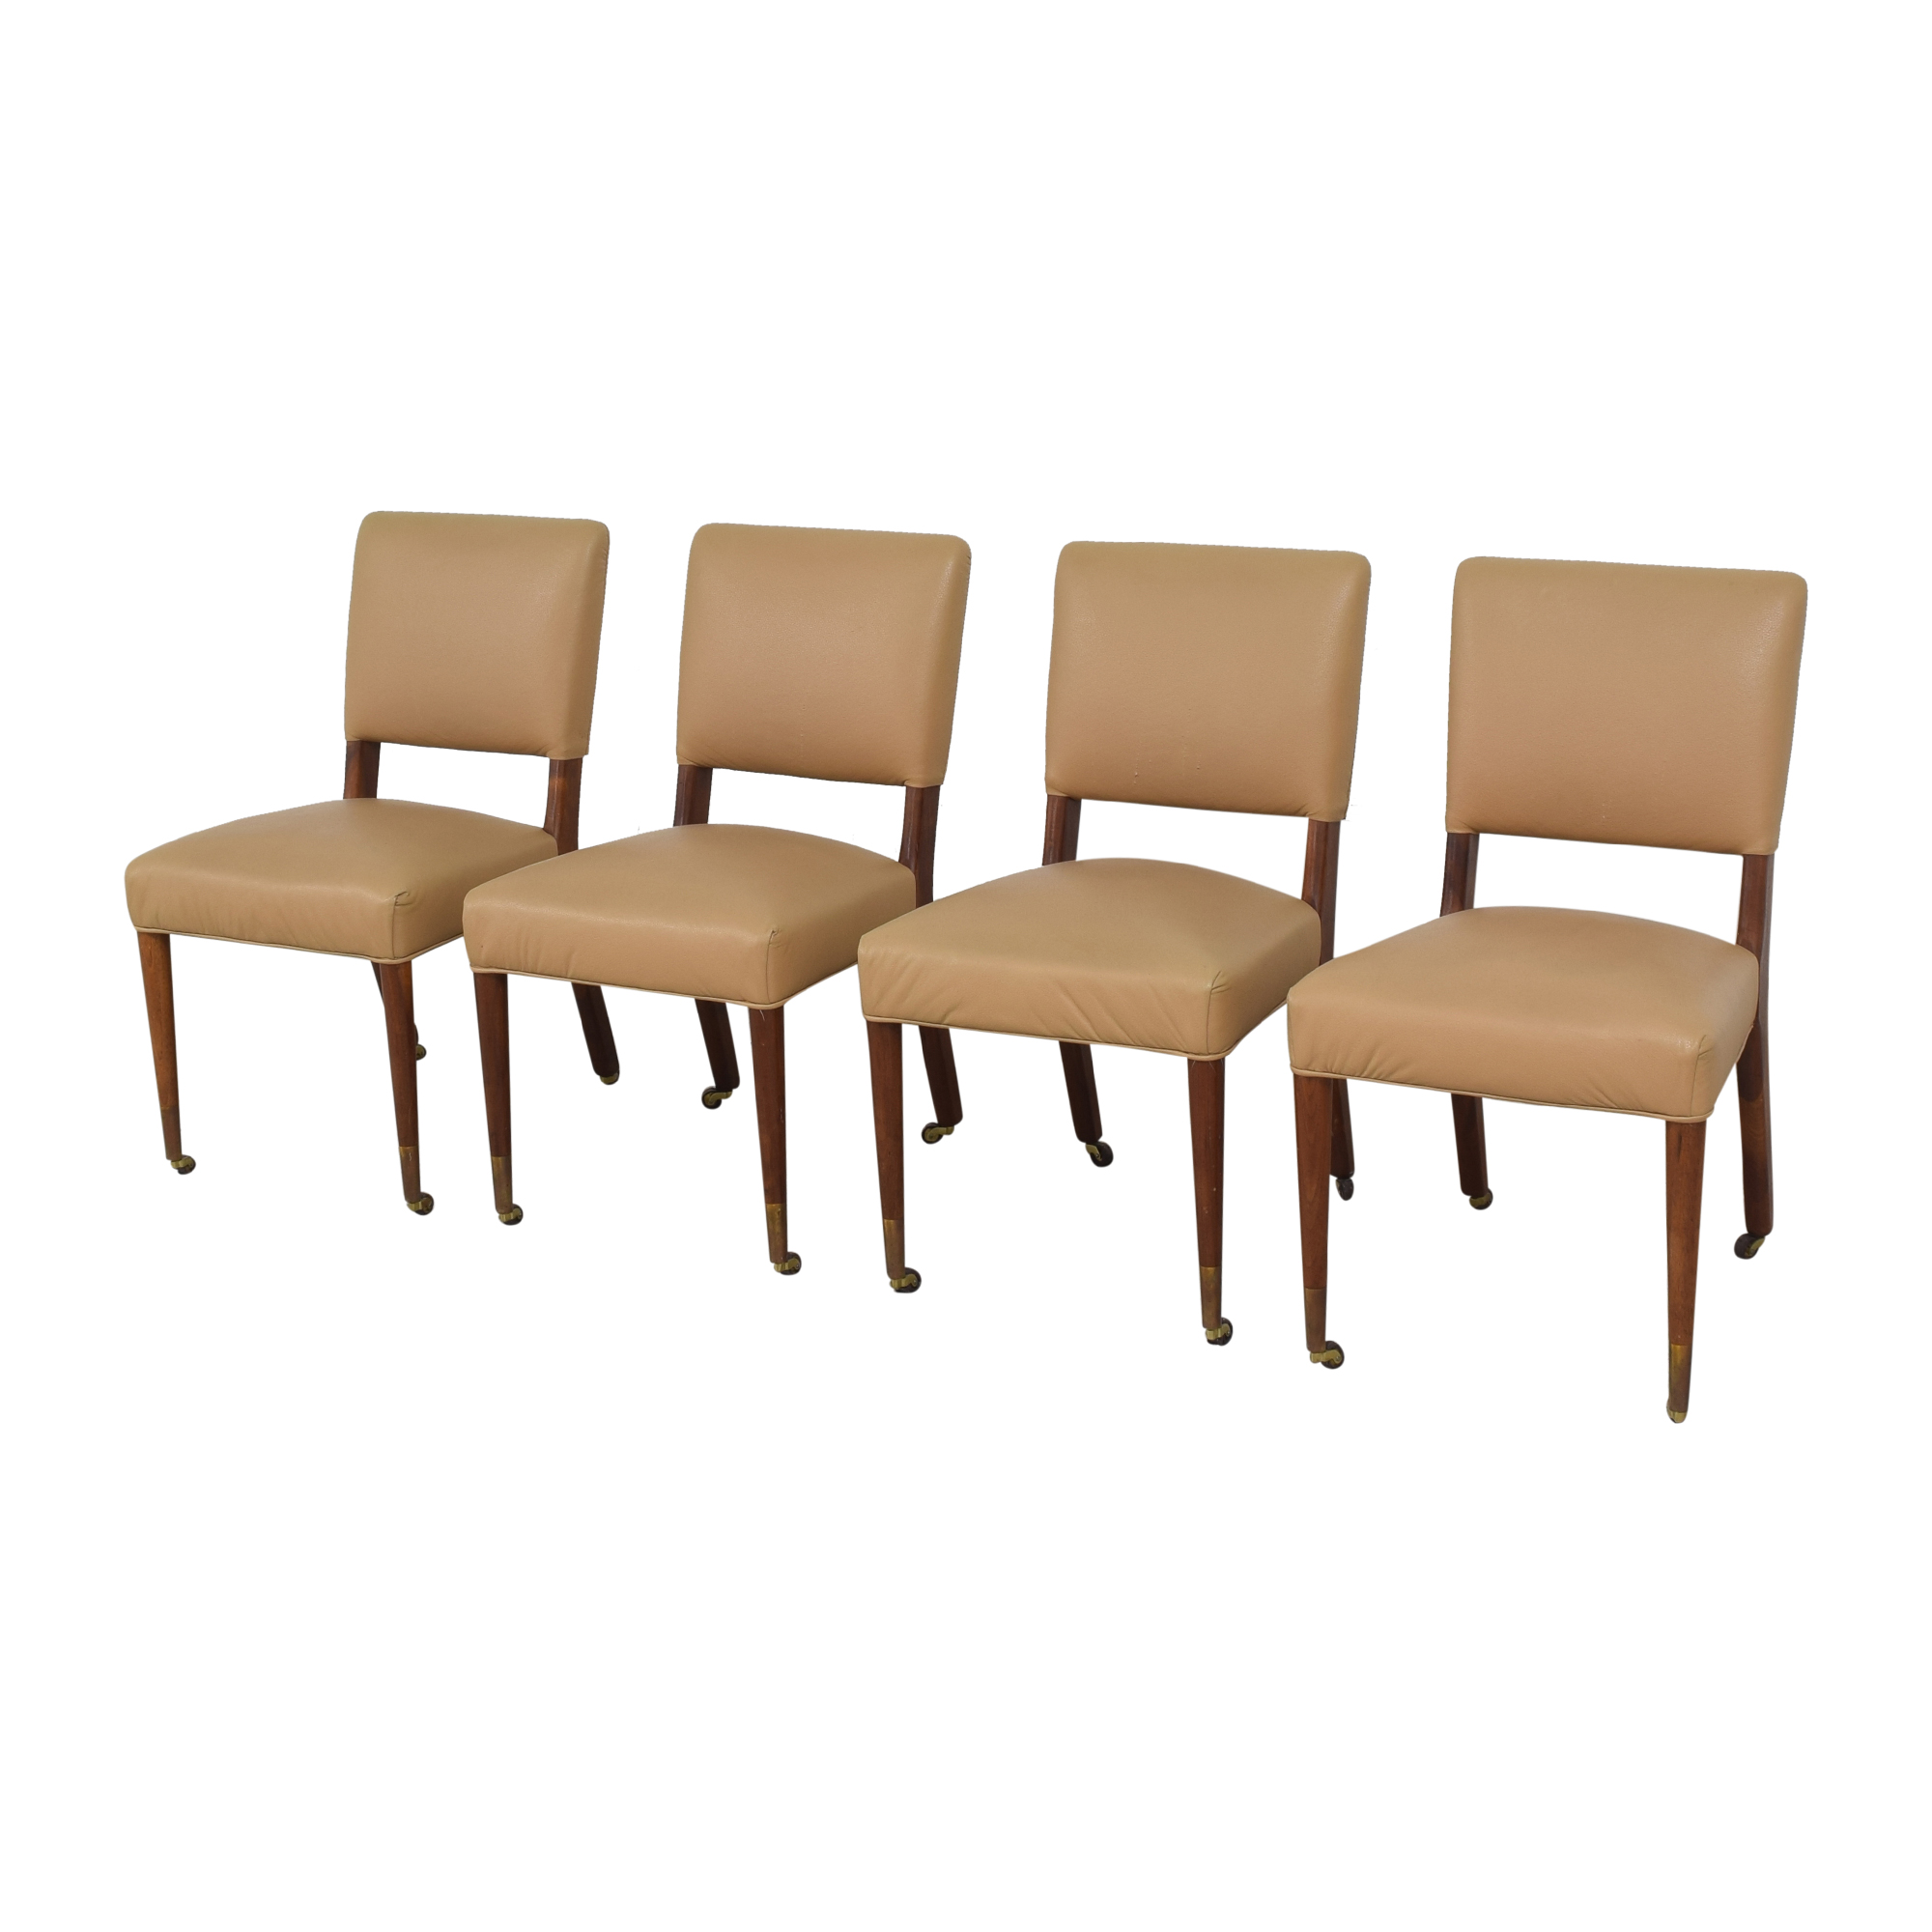 shop Upholstered Dining Chairs on Casters